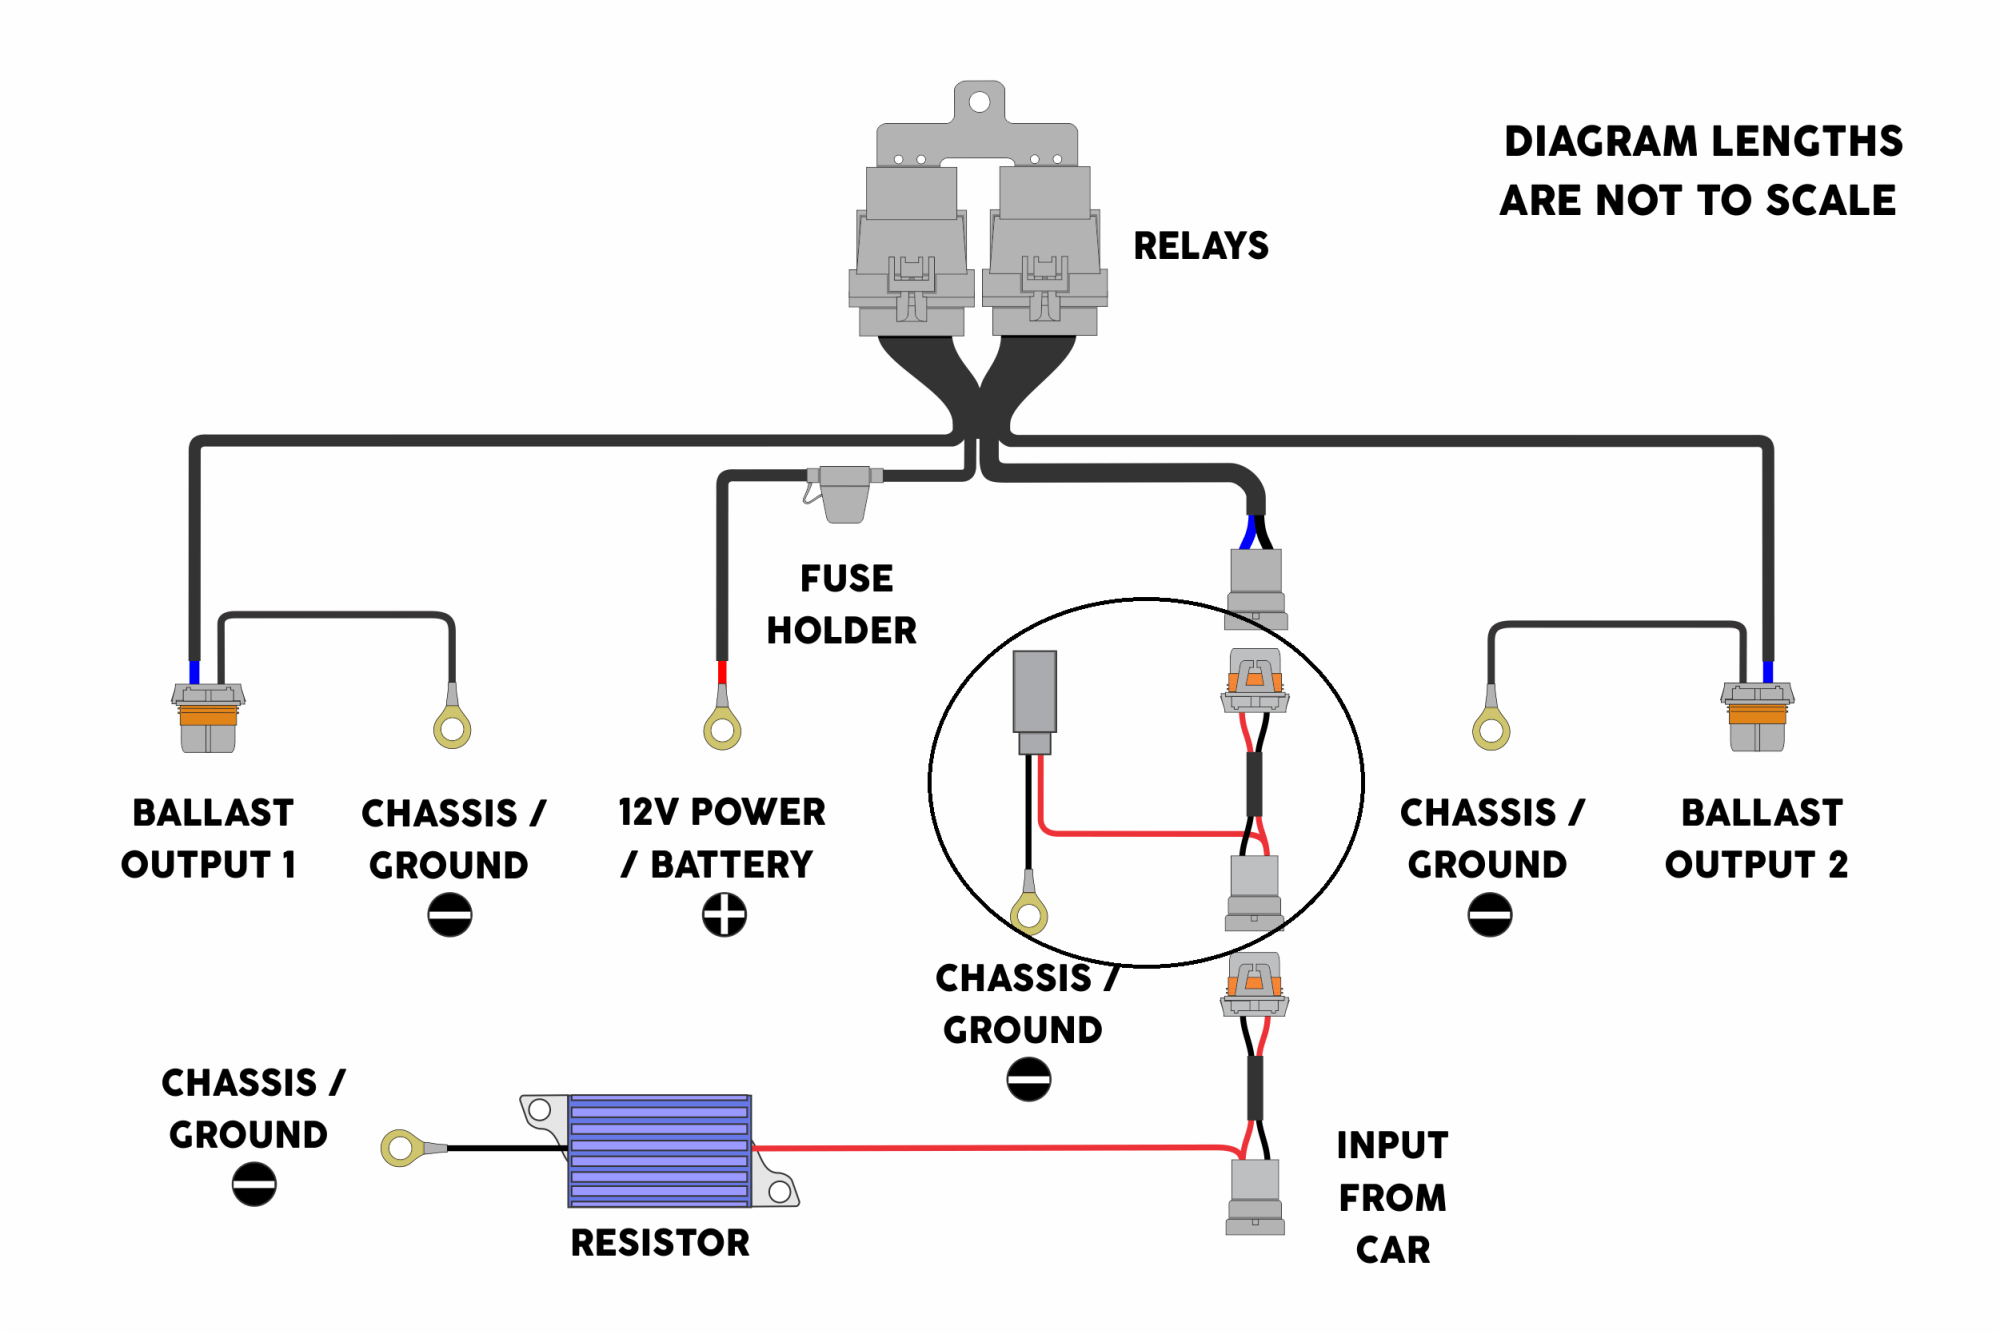 hight resolution of hid wiring schematic wiring diagrams scematic 2001 dodge ram electrical diagram dodge ram hid wiring schematic